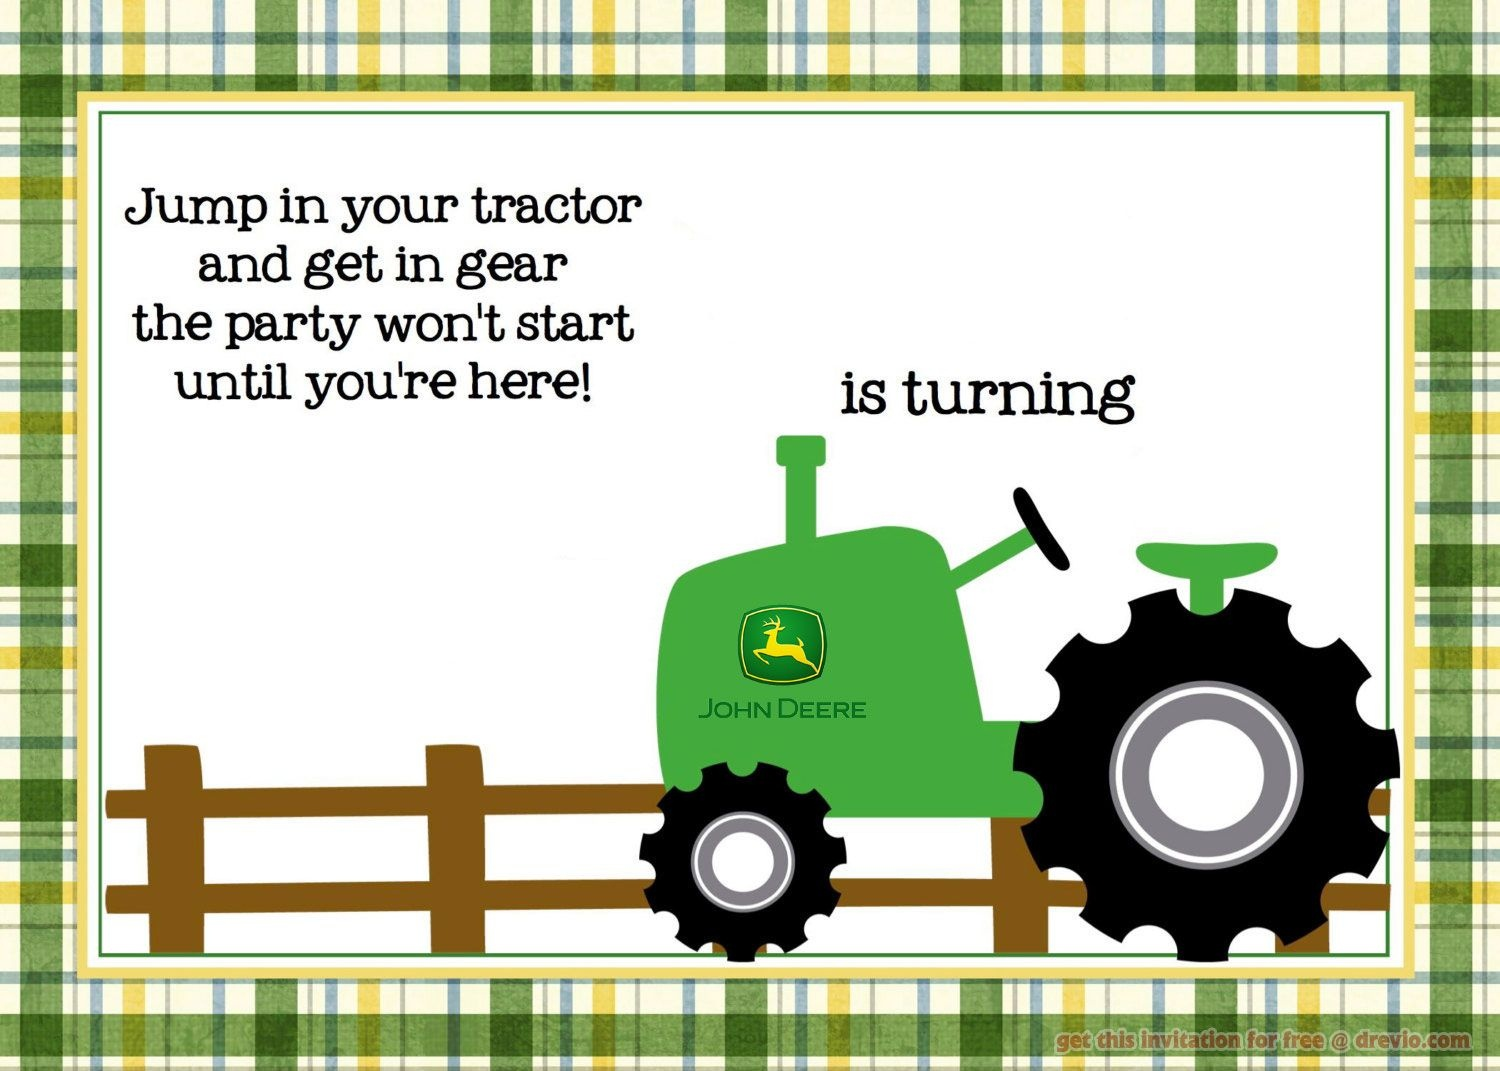 Free Printable John Deere Tractor Birthday | Paper Crafts - Free Printable John Deere Baby Shower Invitations